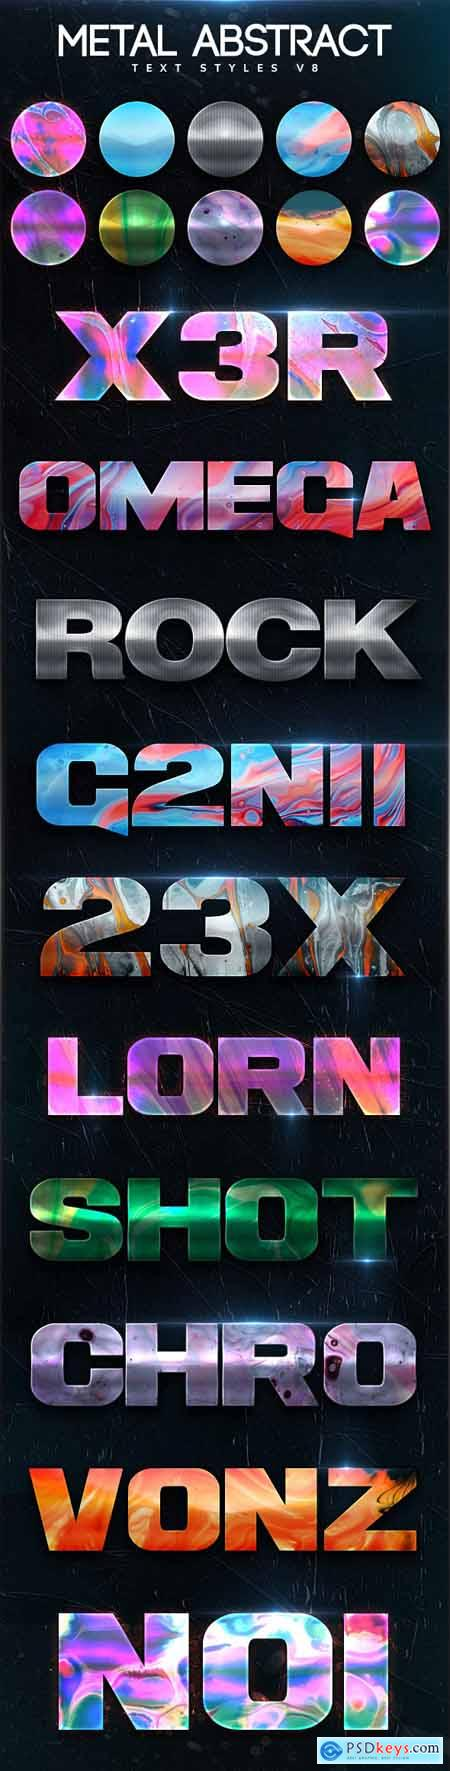 Metal Abstract Text Styles V8 26422140